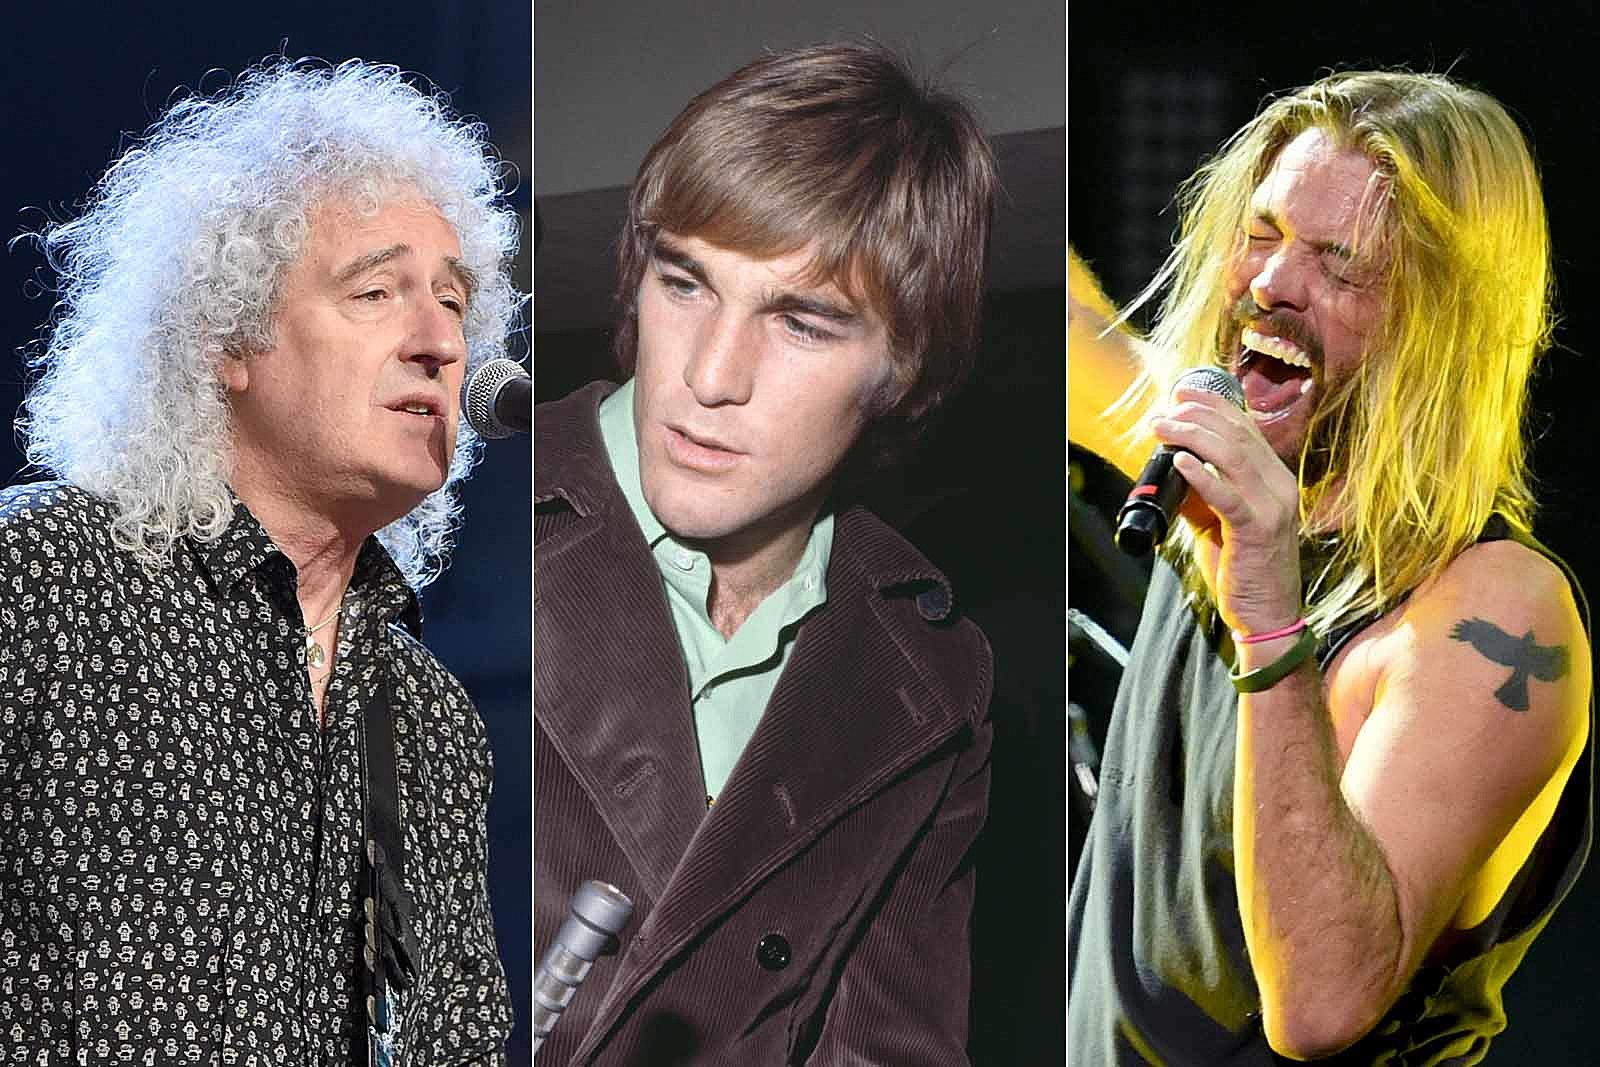 Members of Queen and Foo Fighters Finish Lost Dennis Wilson Track